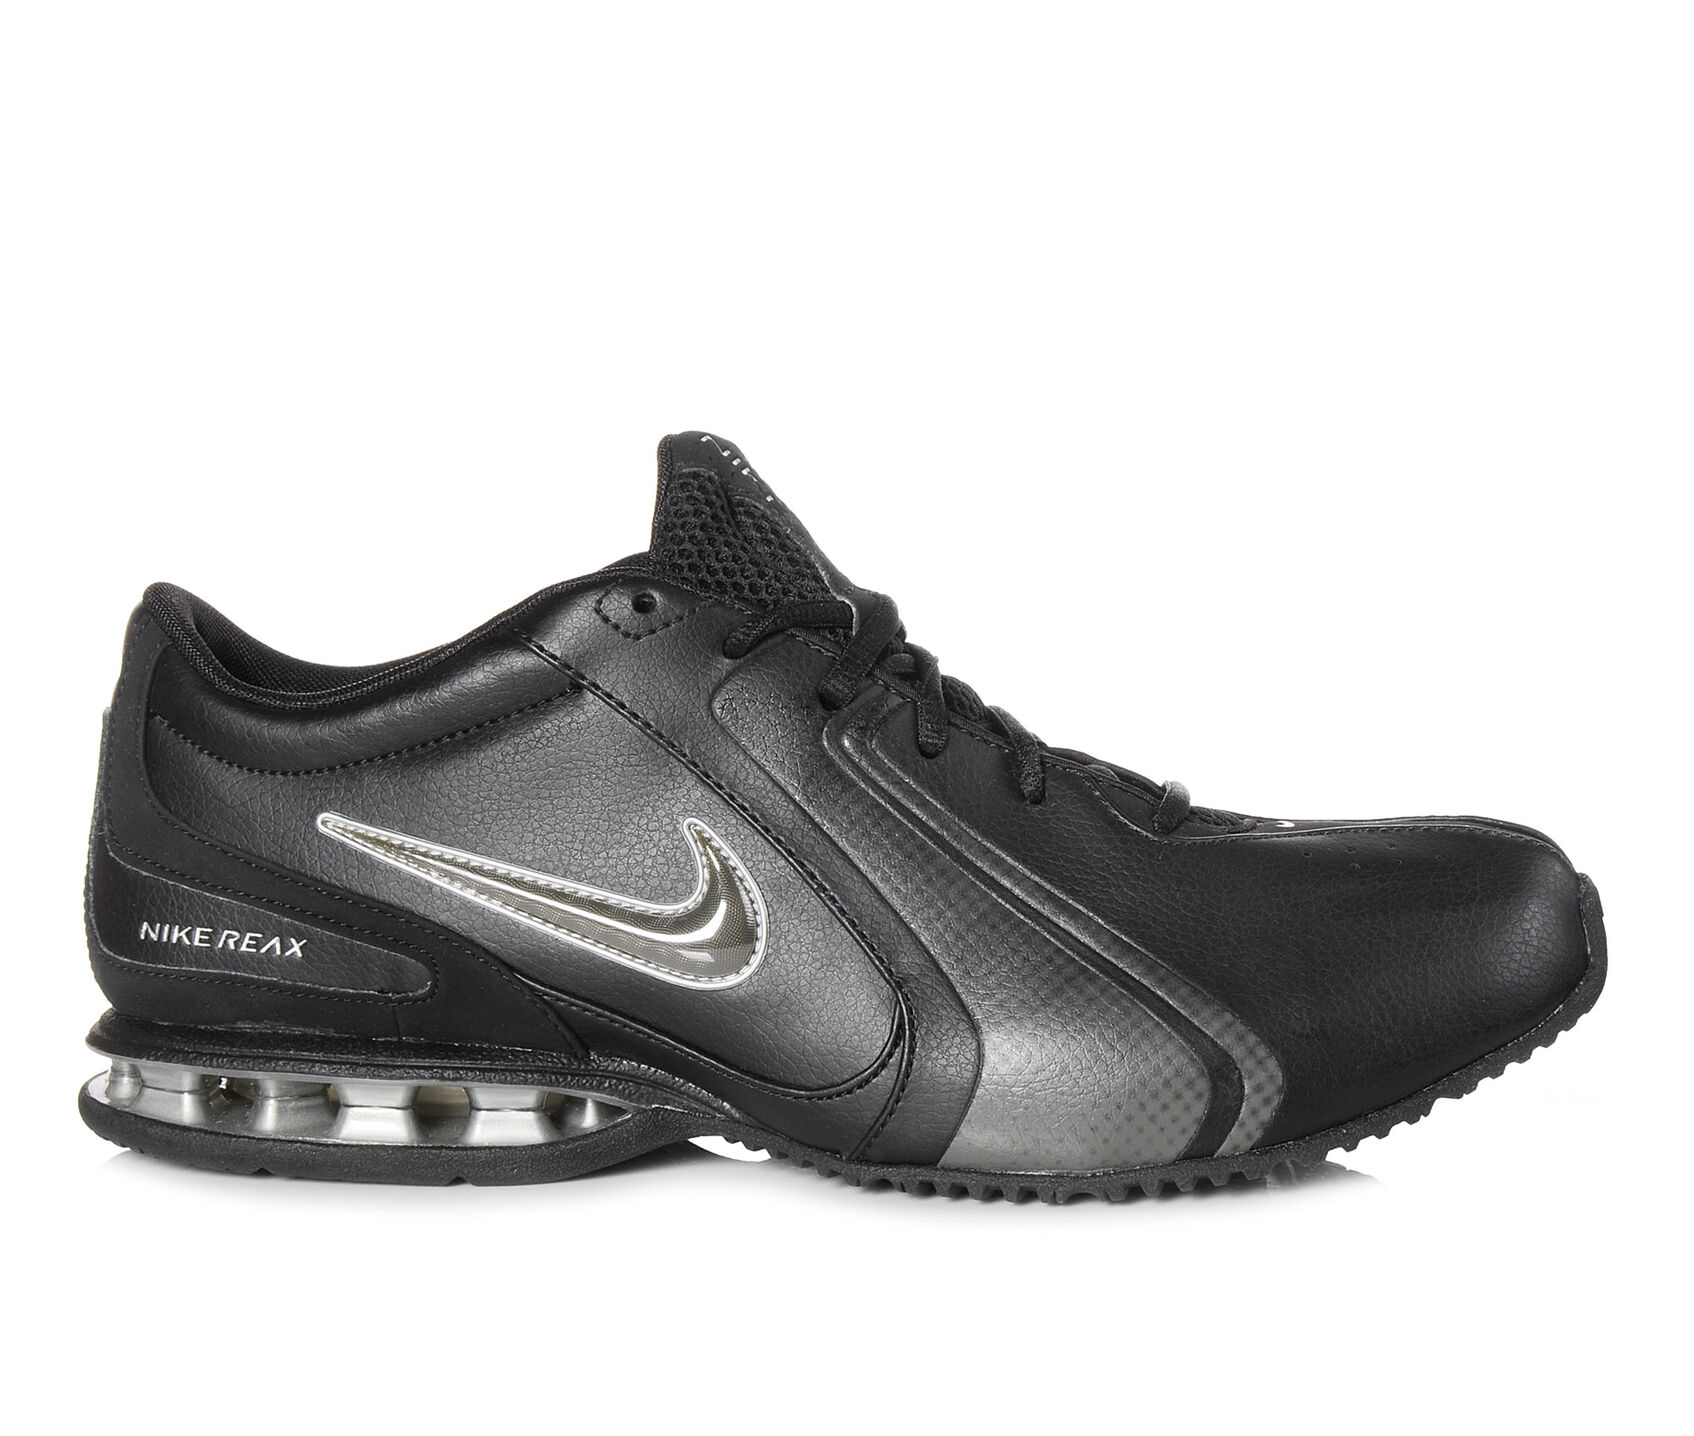 info for 98758 670f4 Men s Nike Reax TR 3 SL Training Shoes   Shoe Carnival